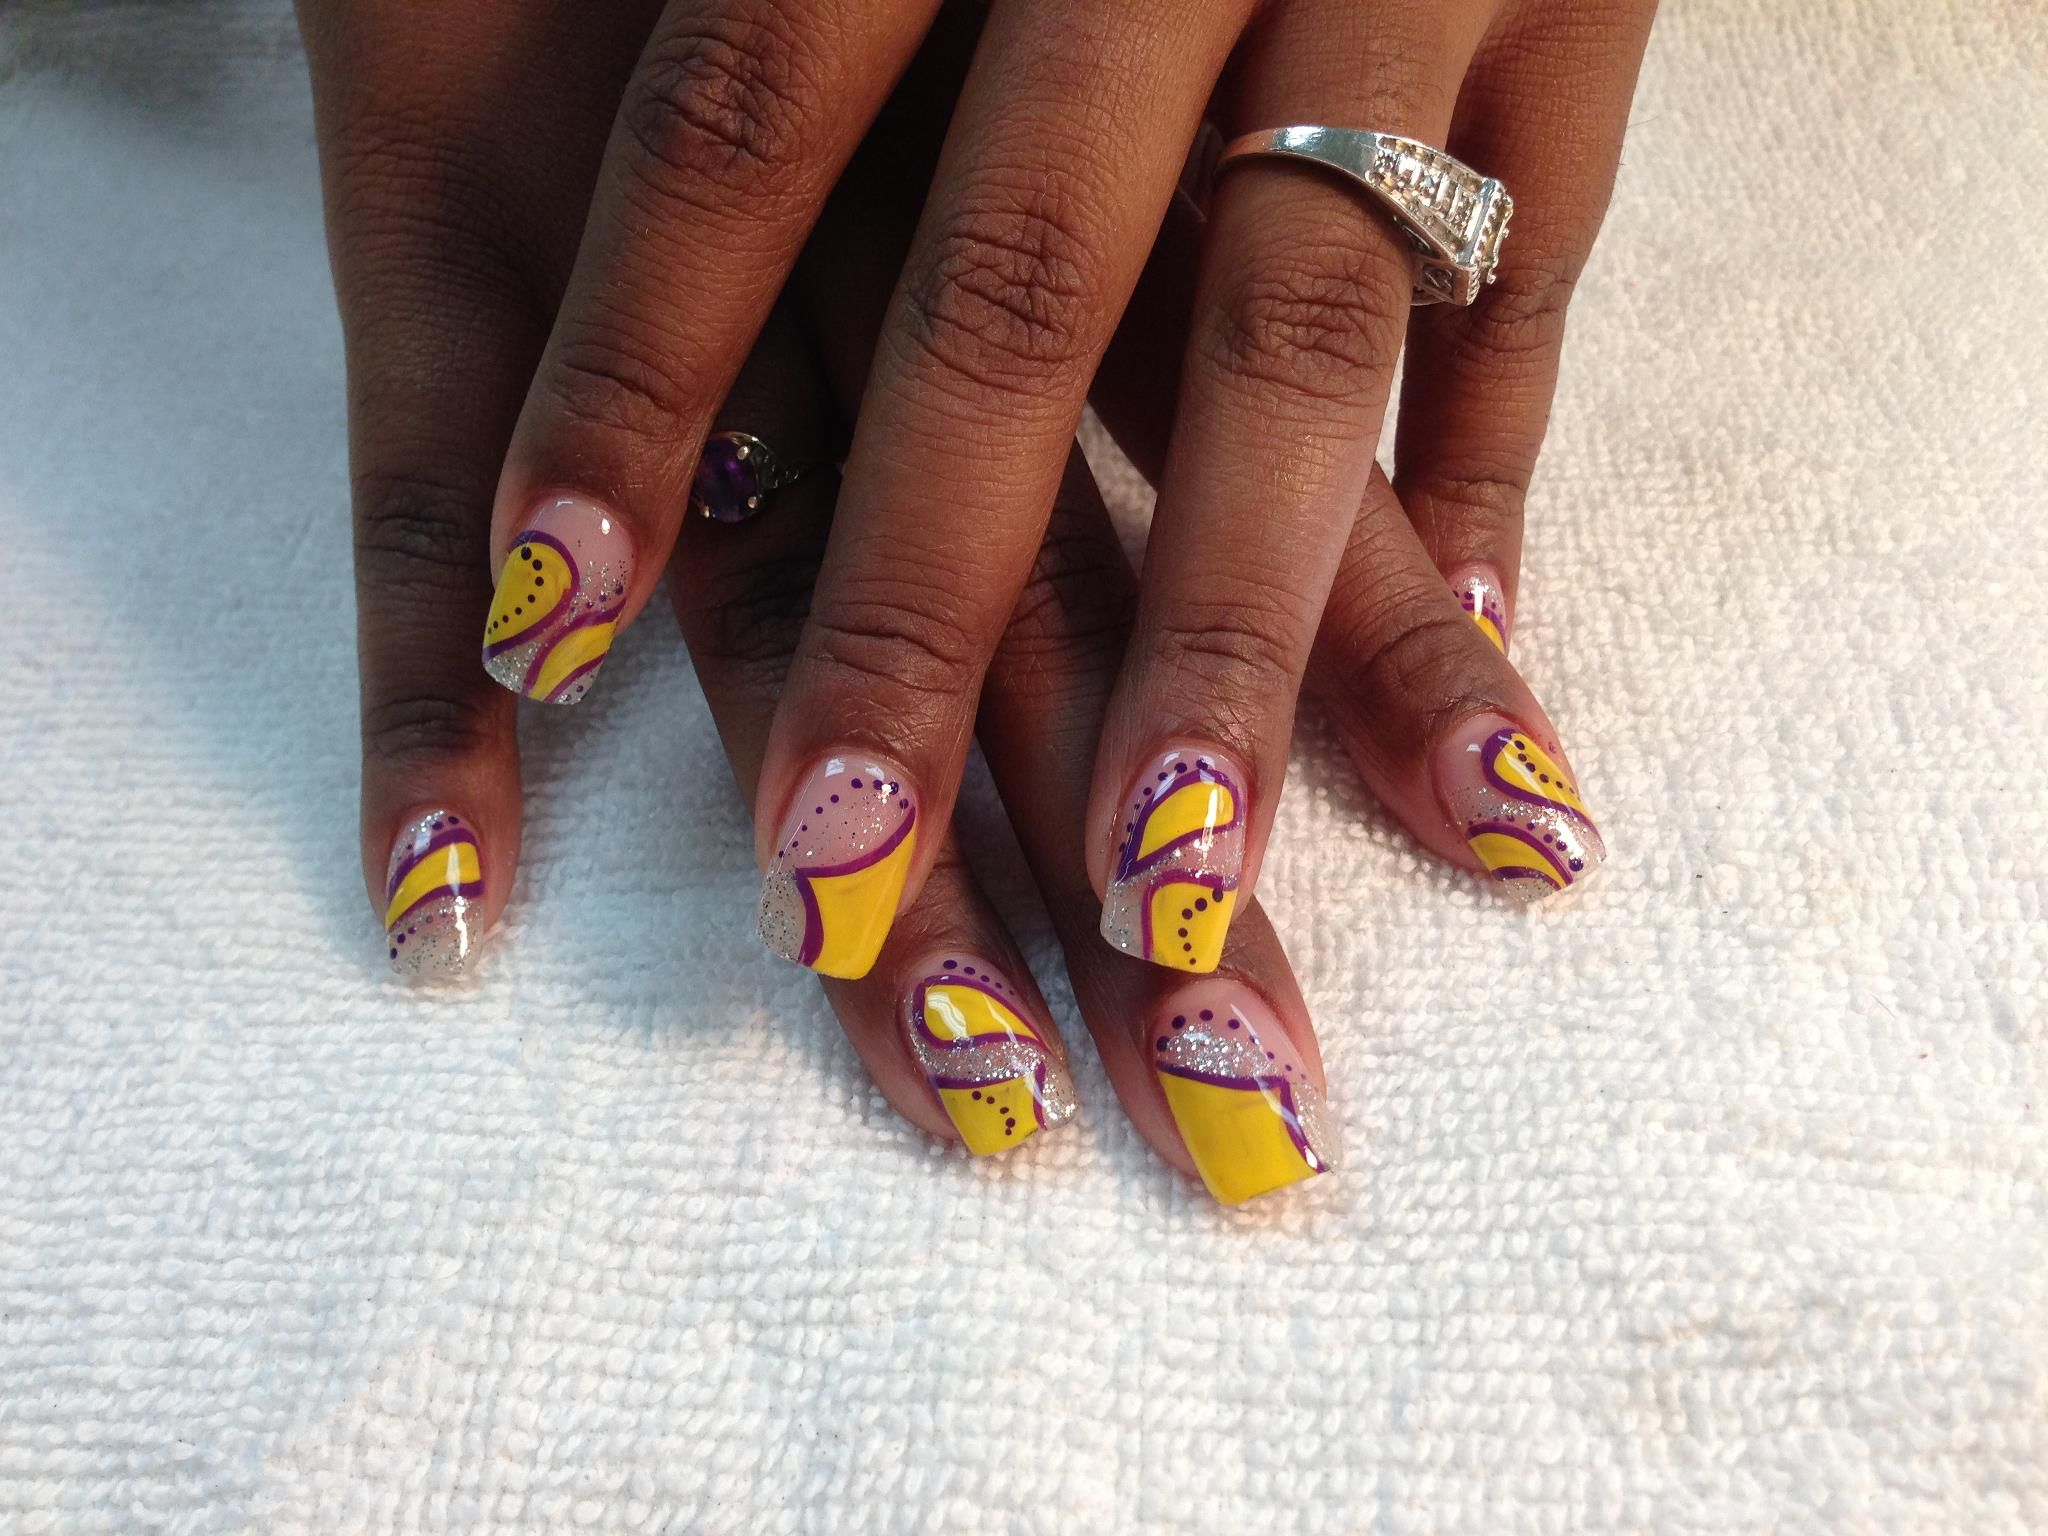 purple nail art, yellow nail art, lsu nails, detailed nail art ...